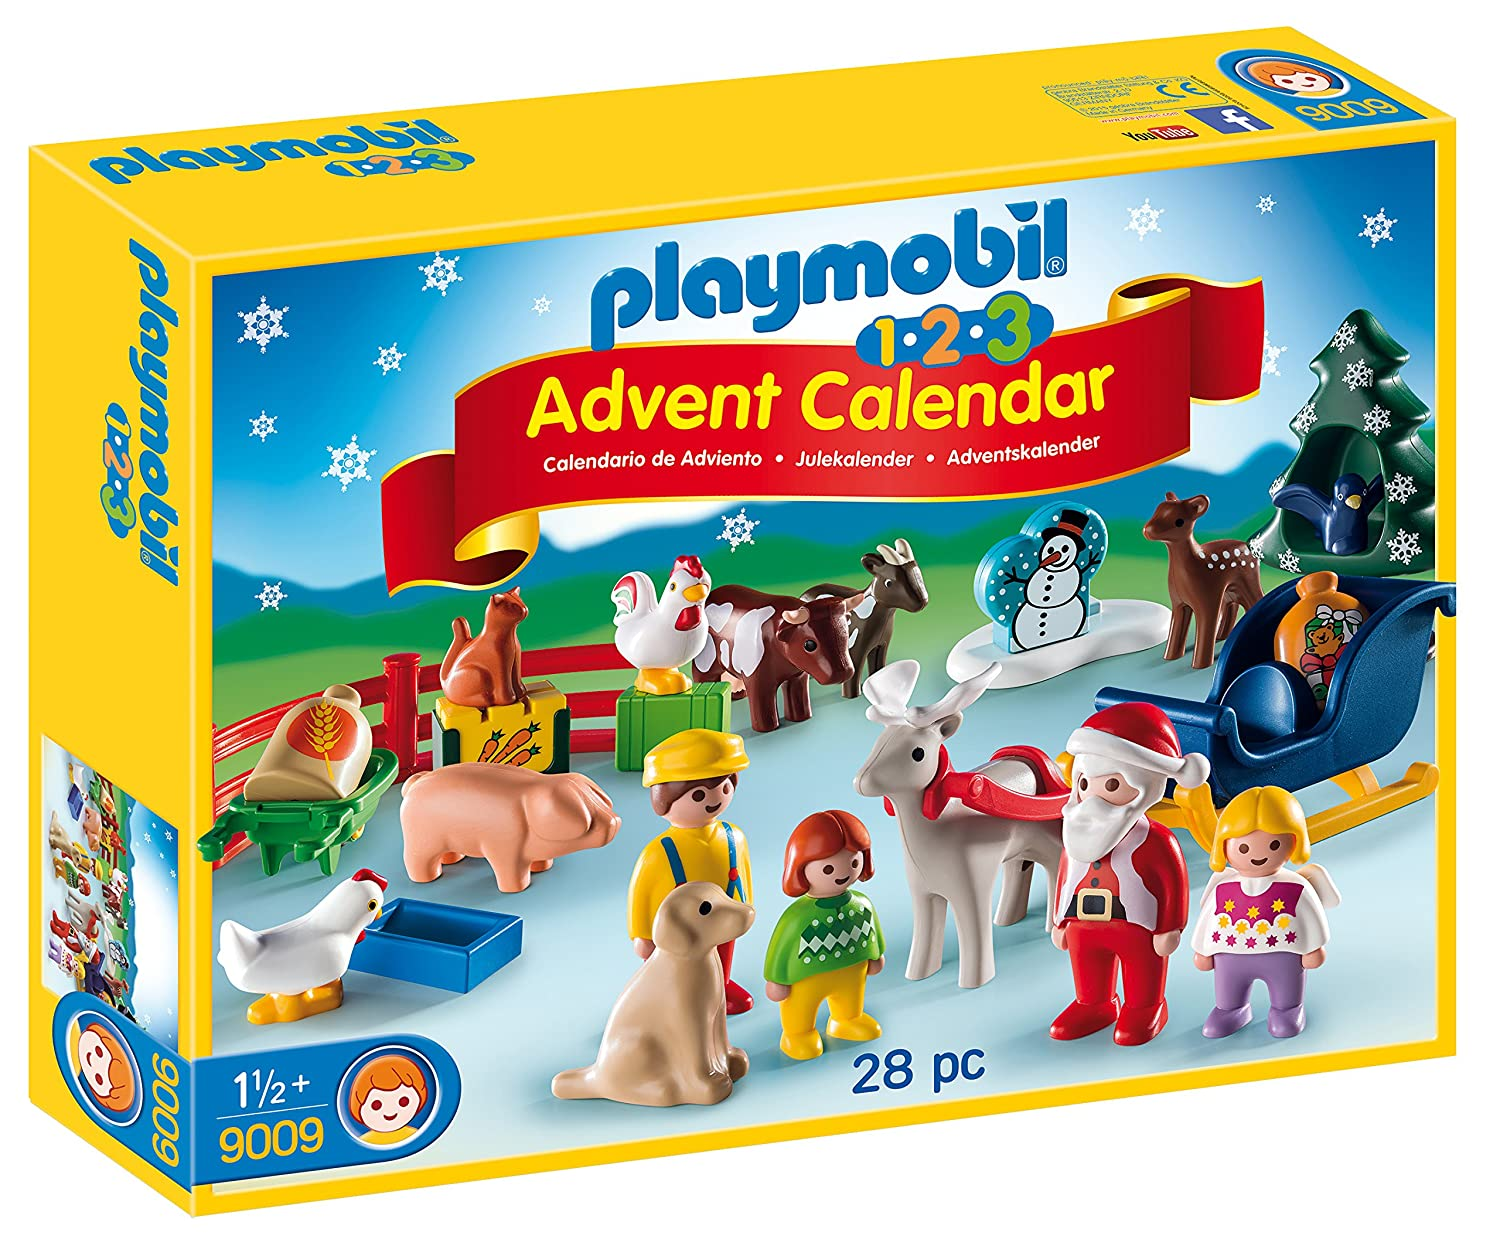 Playmobil 9009 Advent Calendar, 1.2.3 Christmas on the Farm